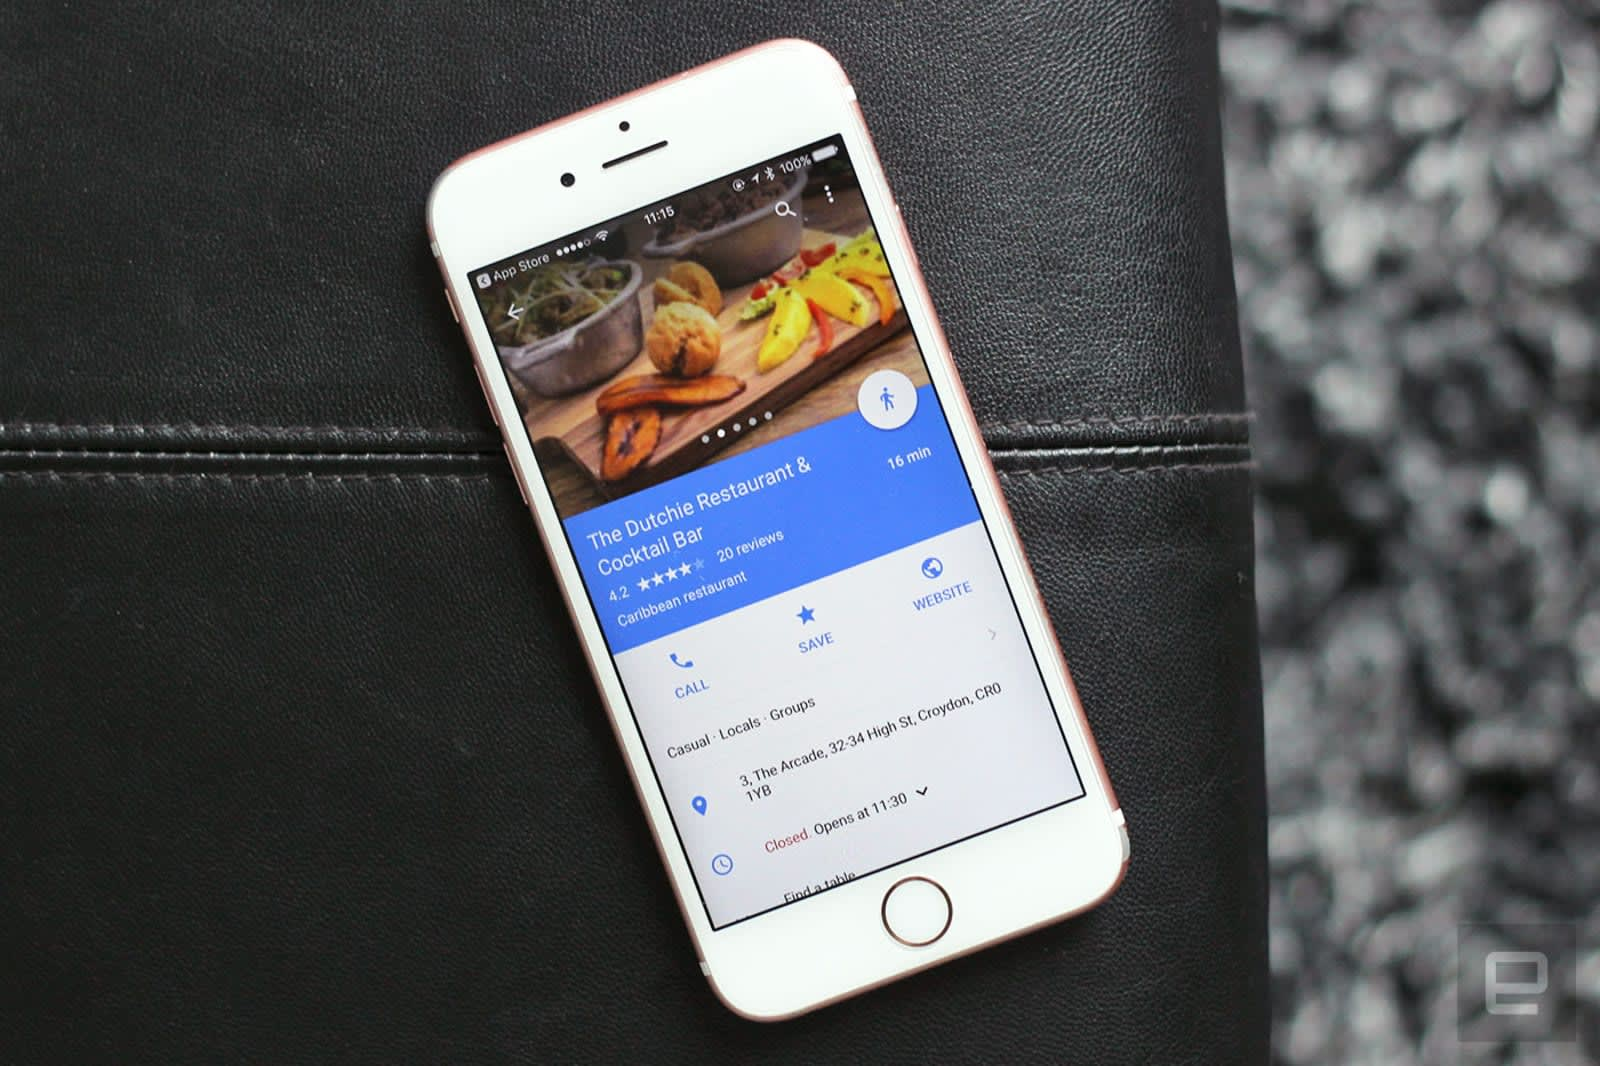 Google Maps can predict how much you'll like a restaurant